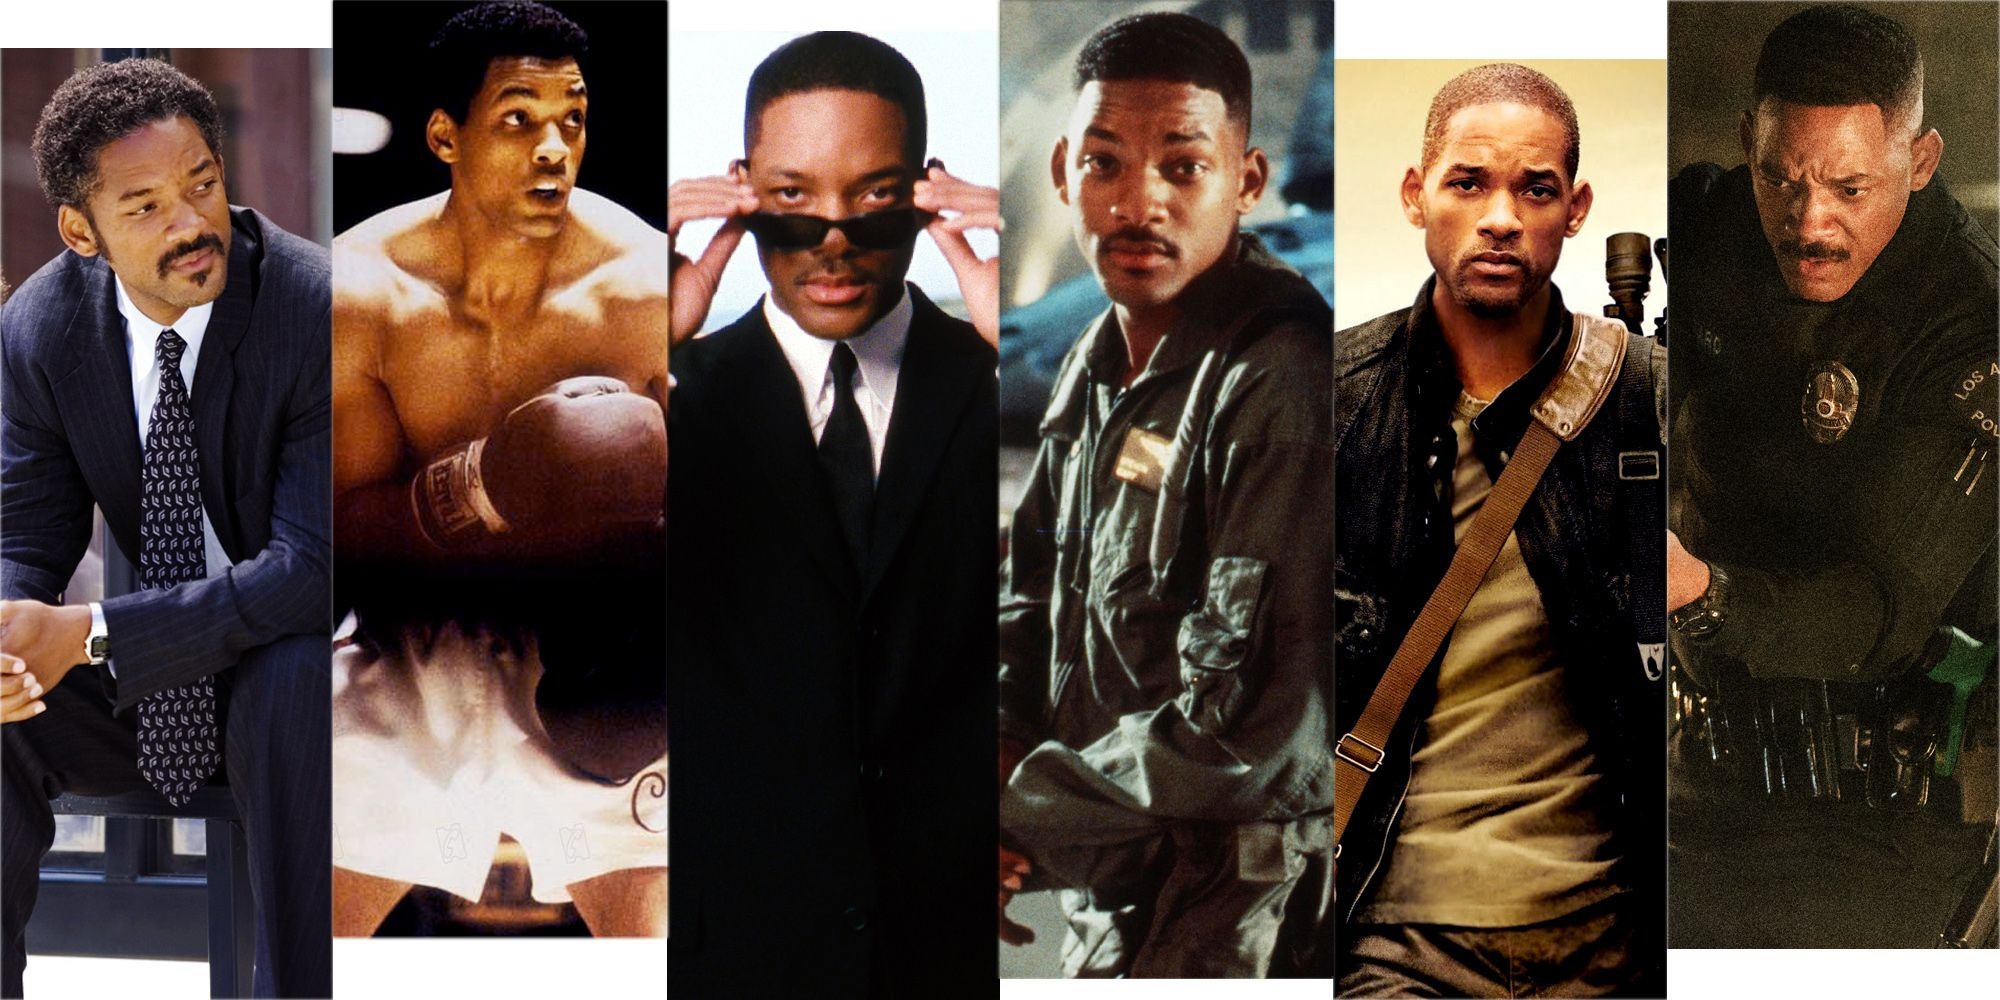 Will smith dating coach movie